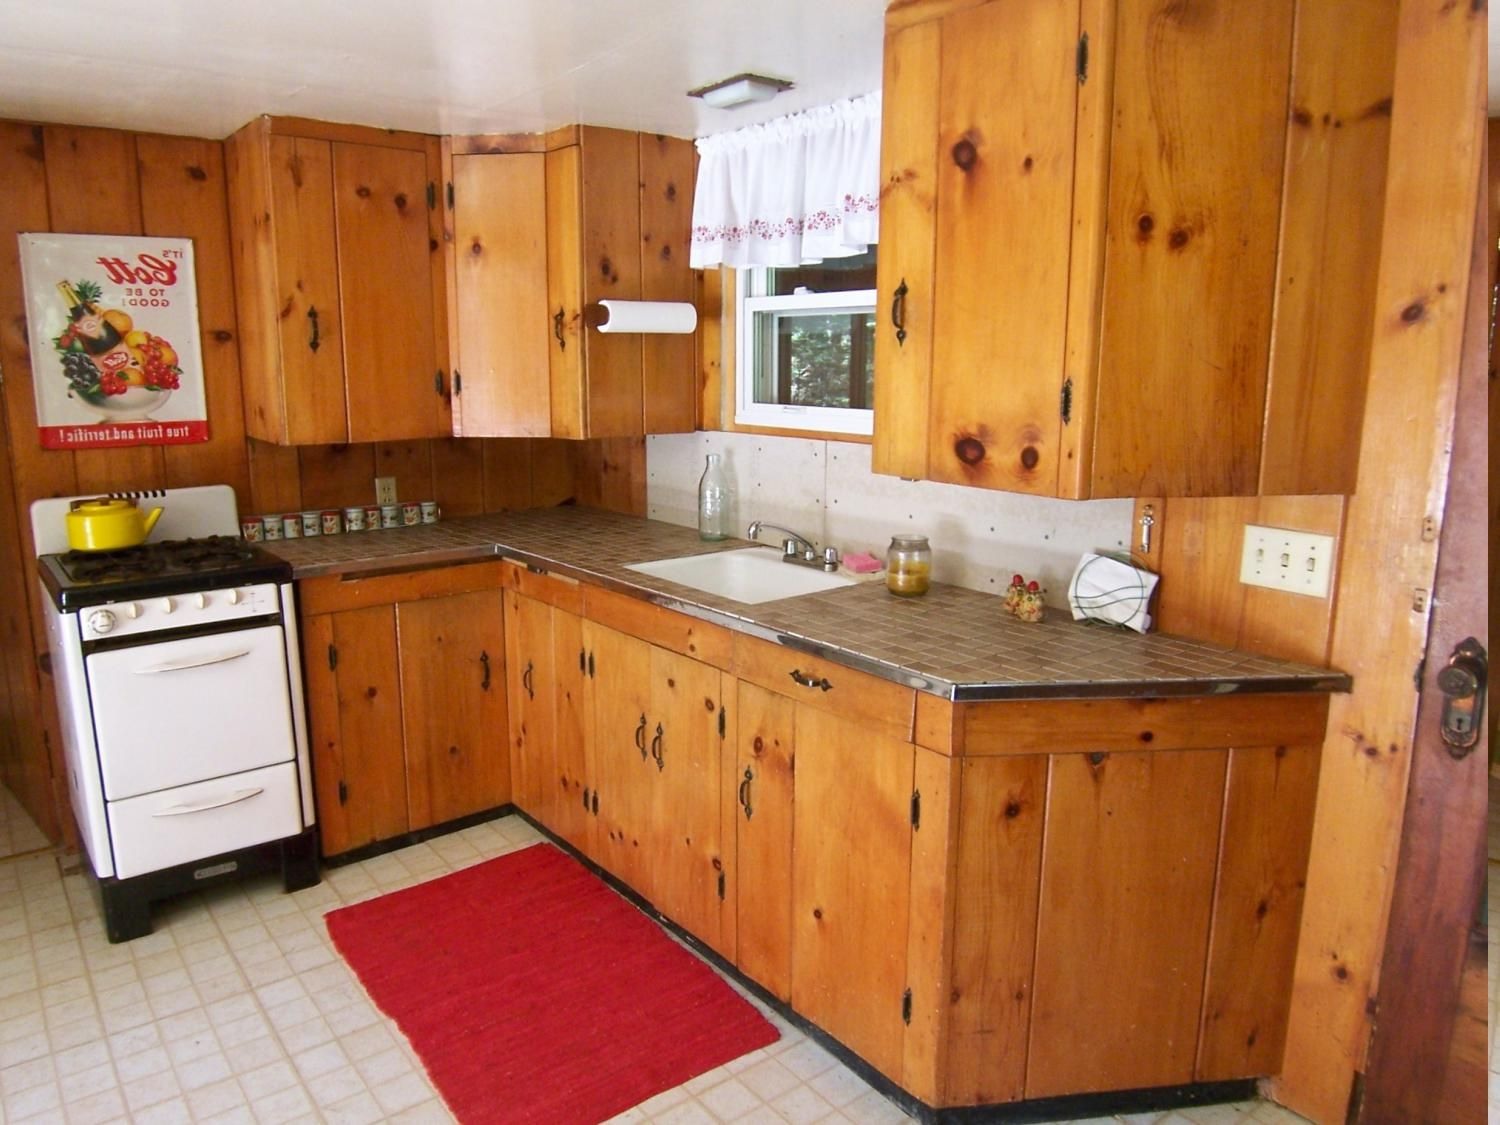 Knotty Pine Cabinets Are Great For Any Kitchen Design Because The Look Of The Wood With Di Knotty Pine Cabinets Kitchen Cabinets For Sale Pine Kitchen Cabinets